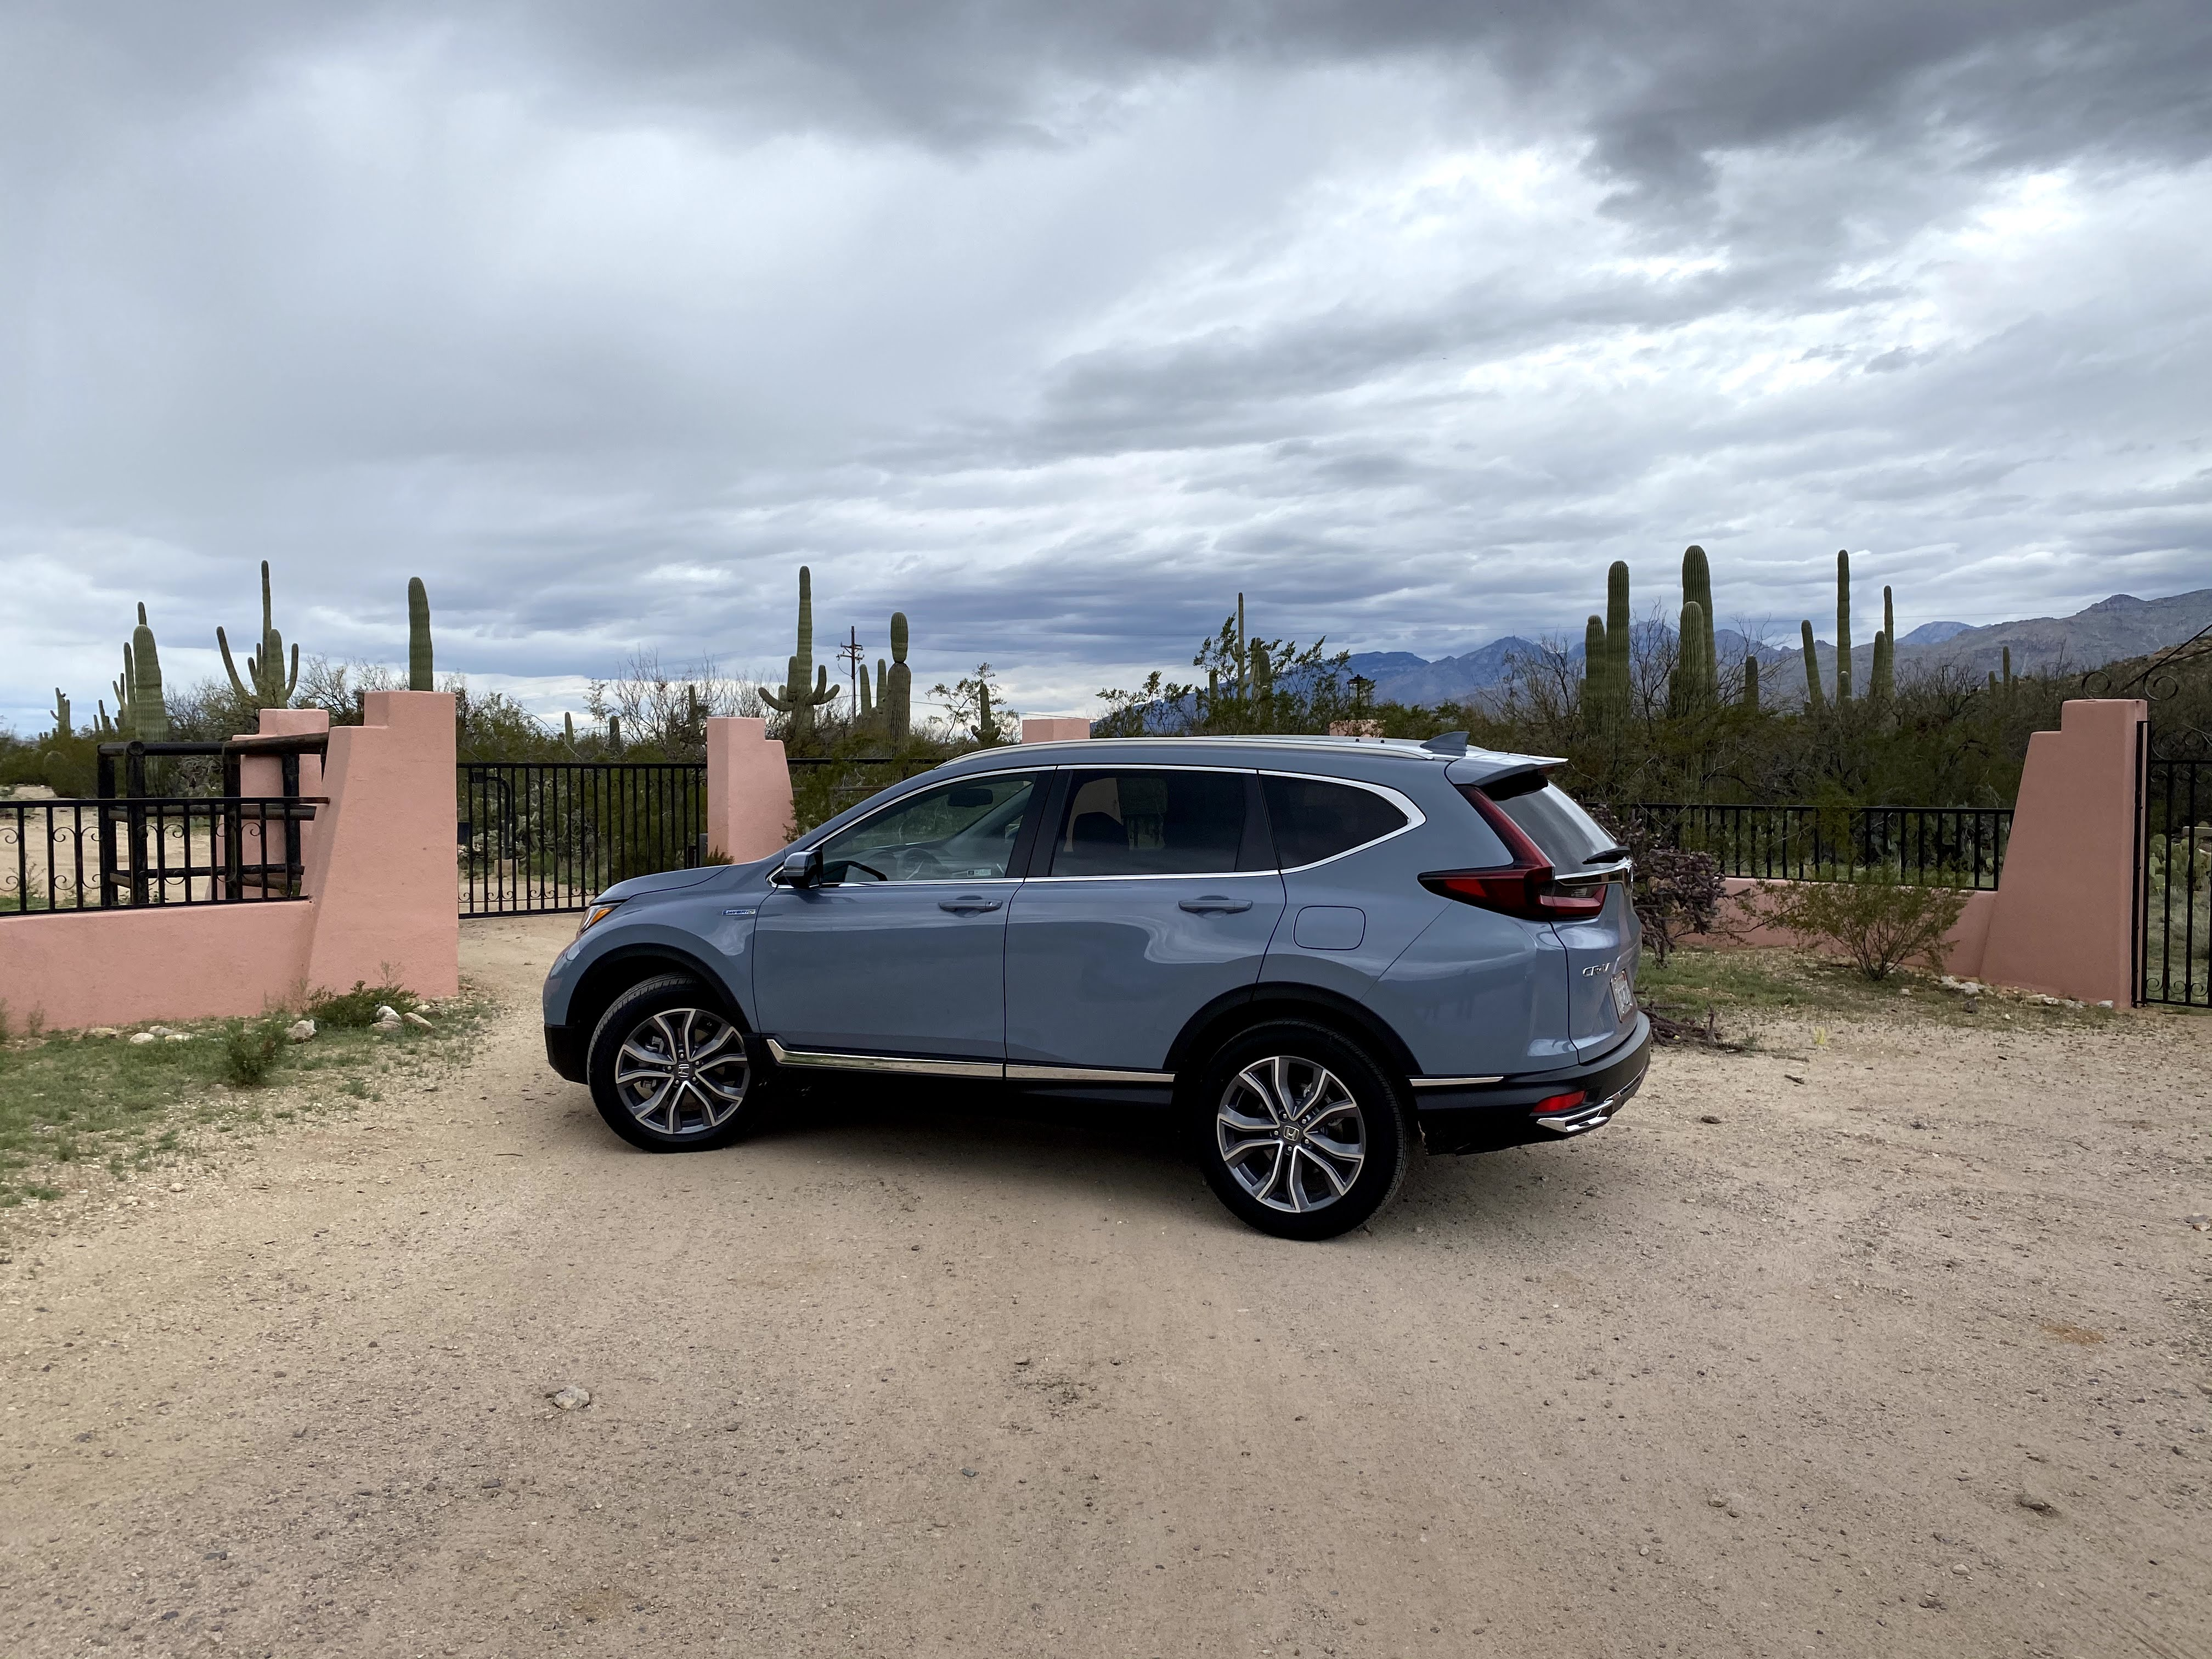 First drive review: 2020 Honda CR-V Hybrid teases an EV experience with no charge port